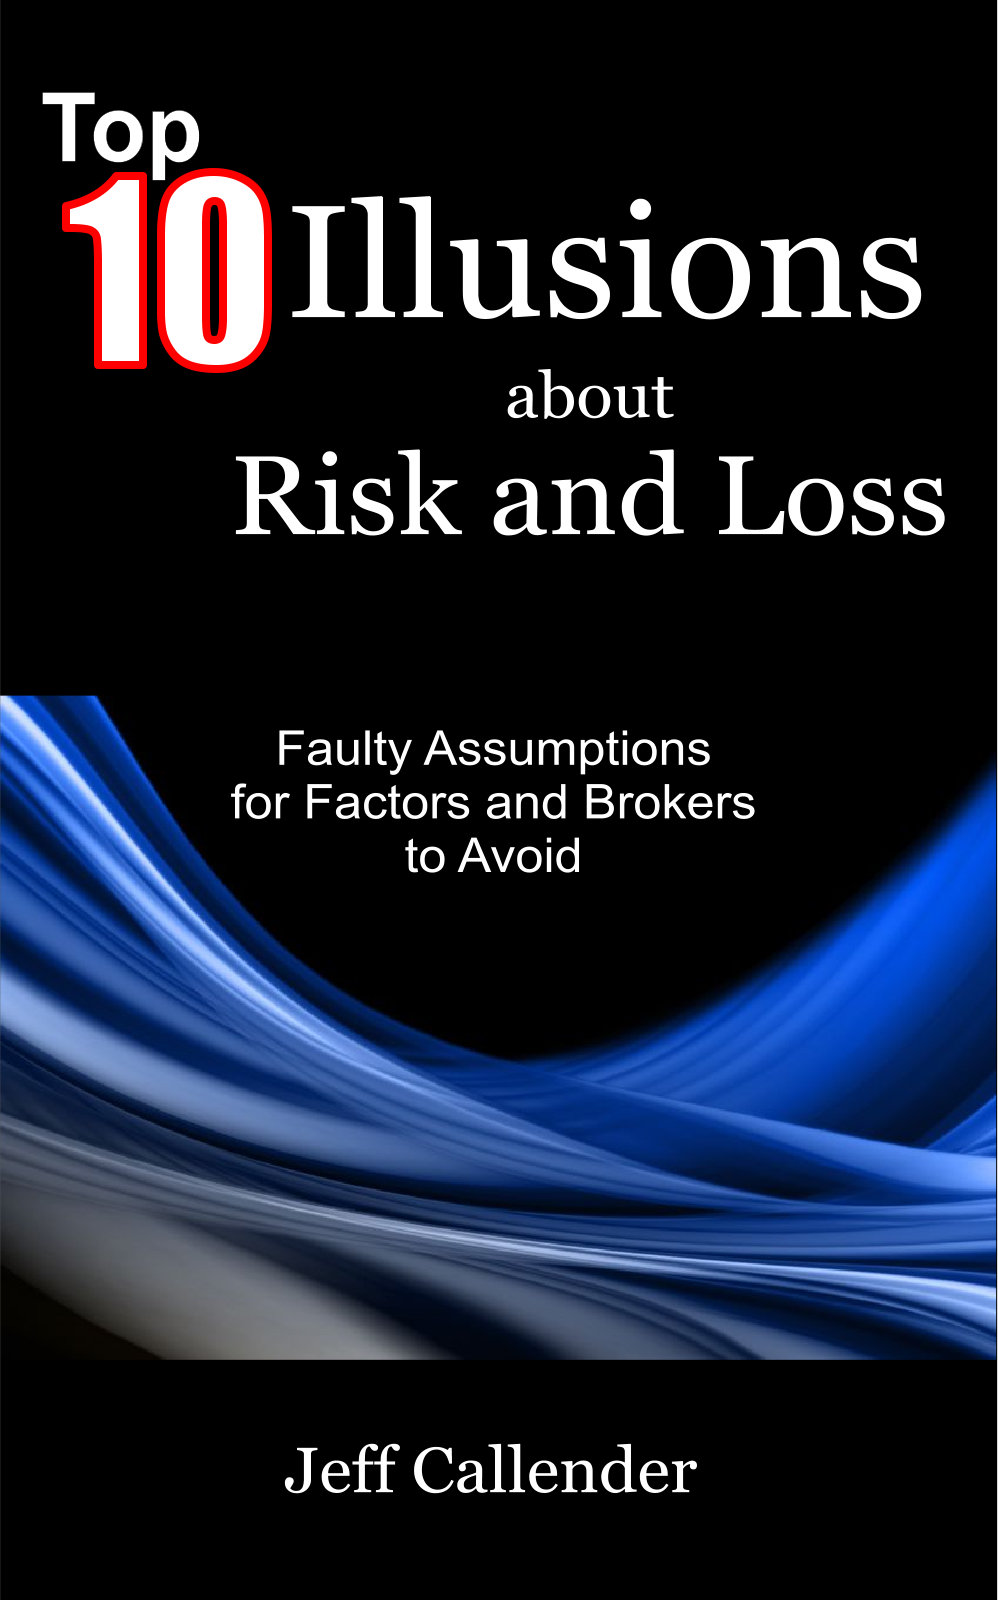 Top 10 Illusions about Risk and Loss